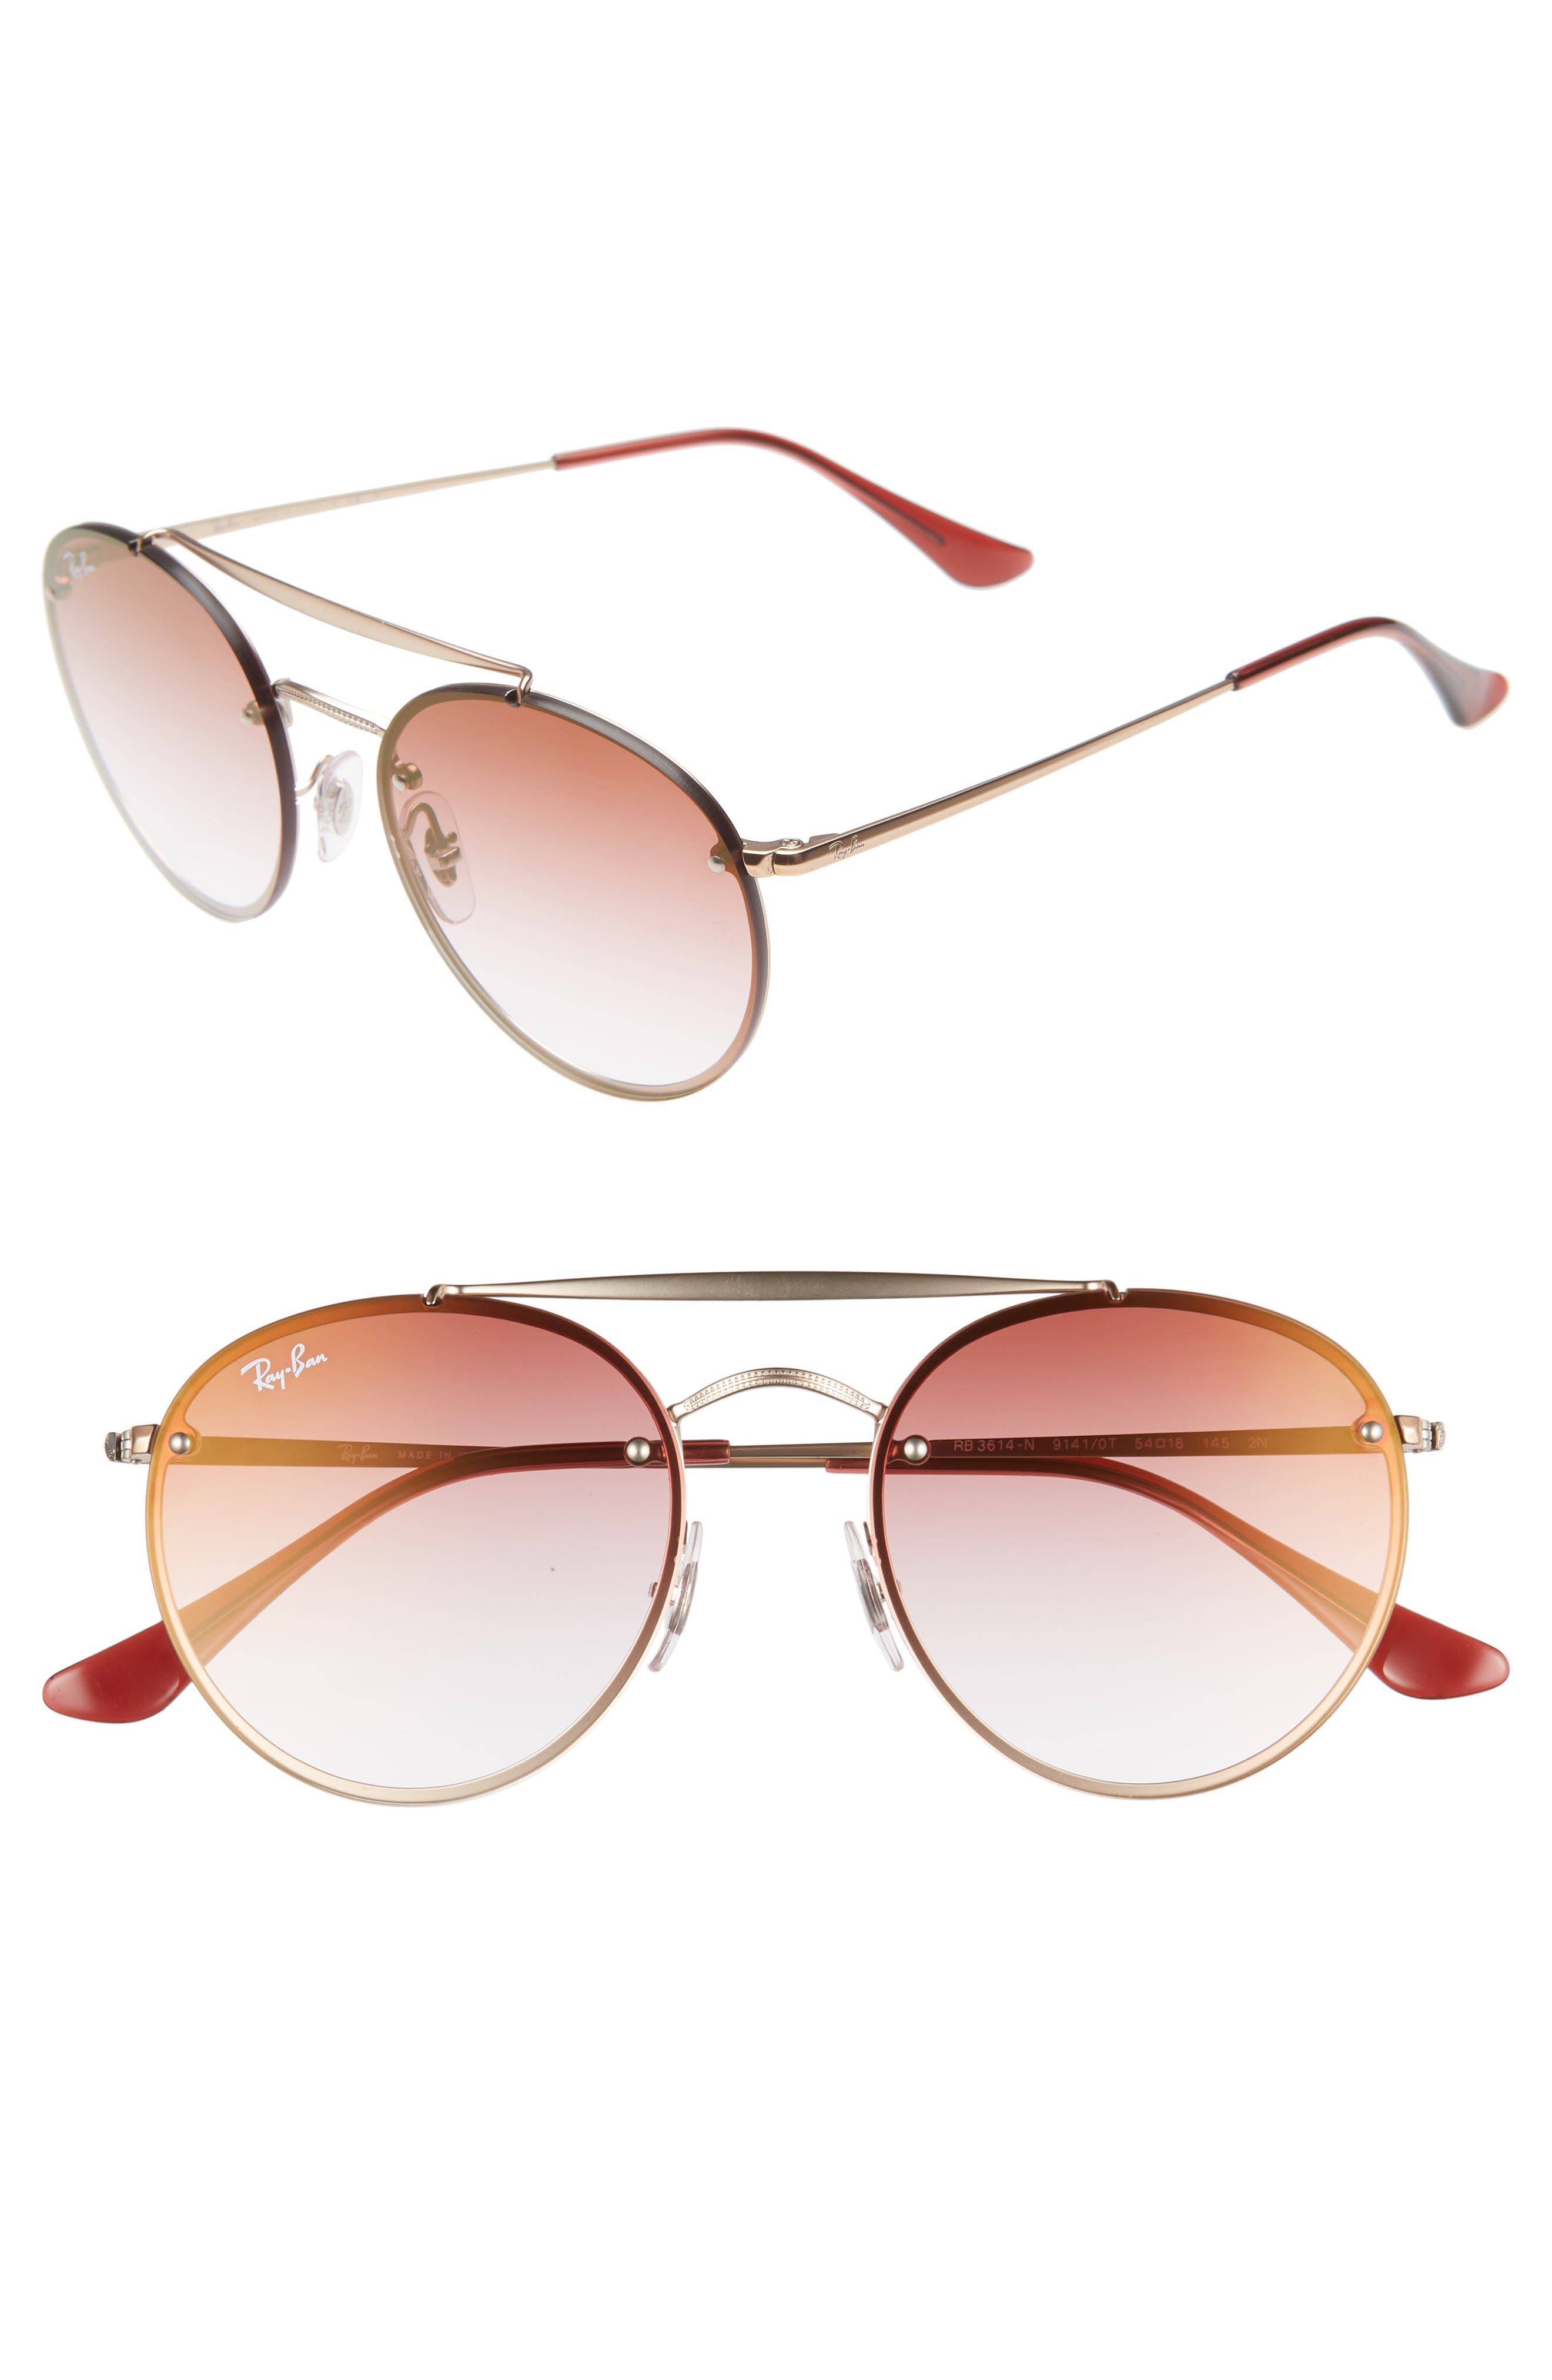 Ray-Ban 5m Polarized Gradient Round Sunglasses - Red/ Copper Gradient